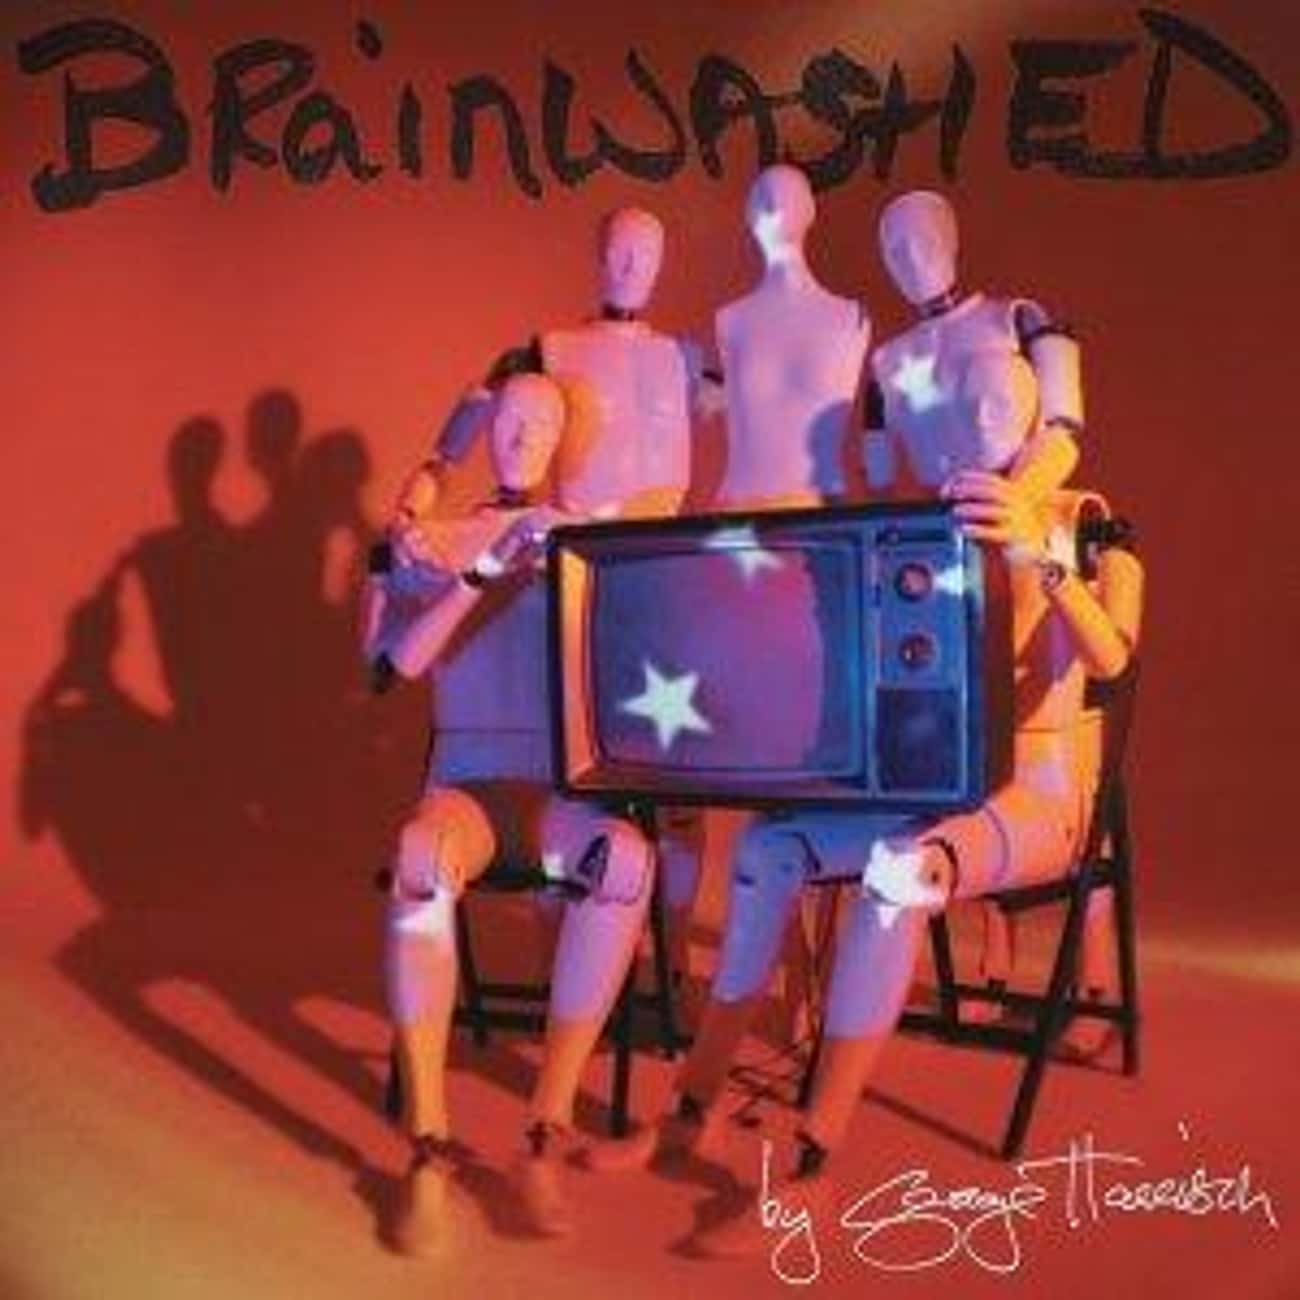 Brainwashed is listed (or ranked) 4 on the list The Best George Harrison Albums of All Time